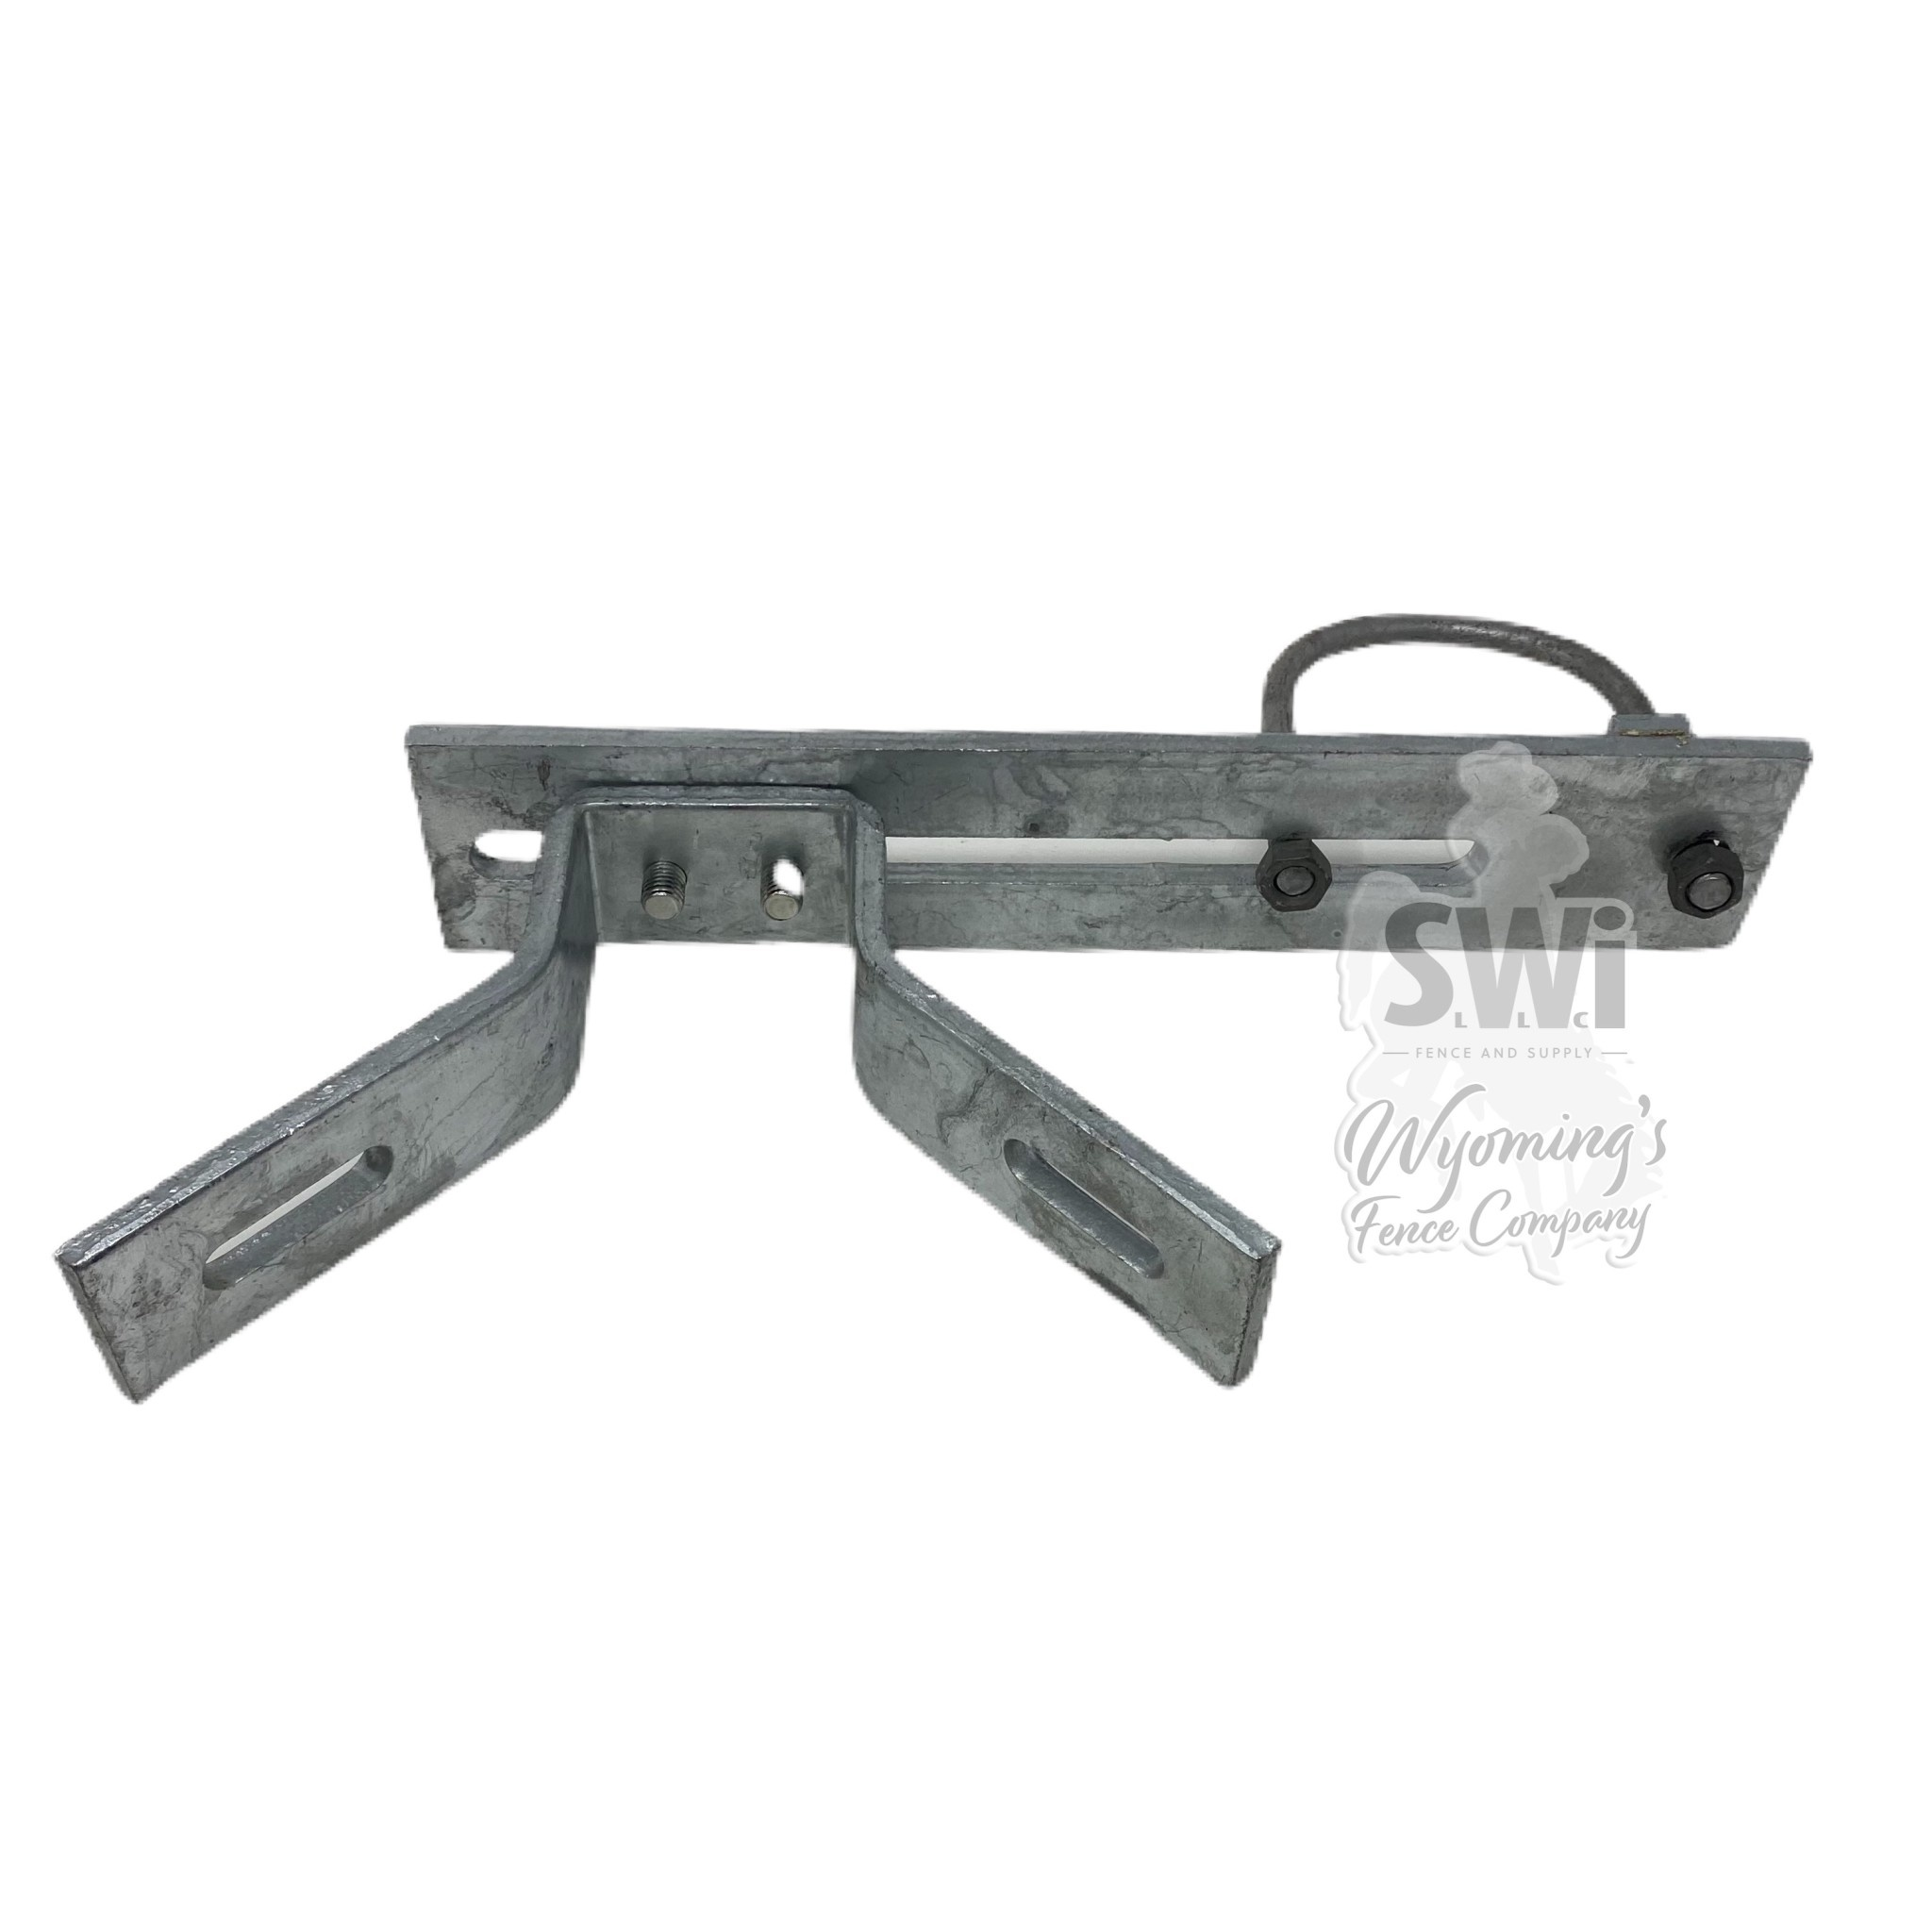 2 7/8 in. OR 4 in. CANTILEVER NESTING LATCH